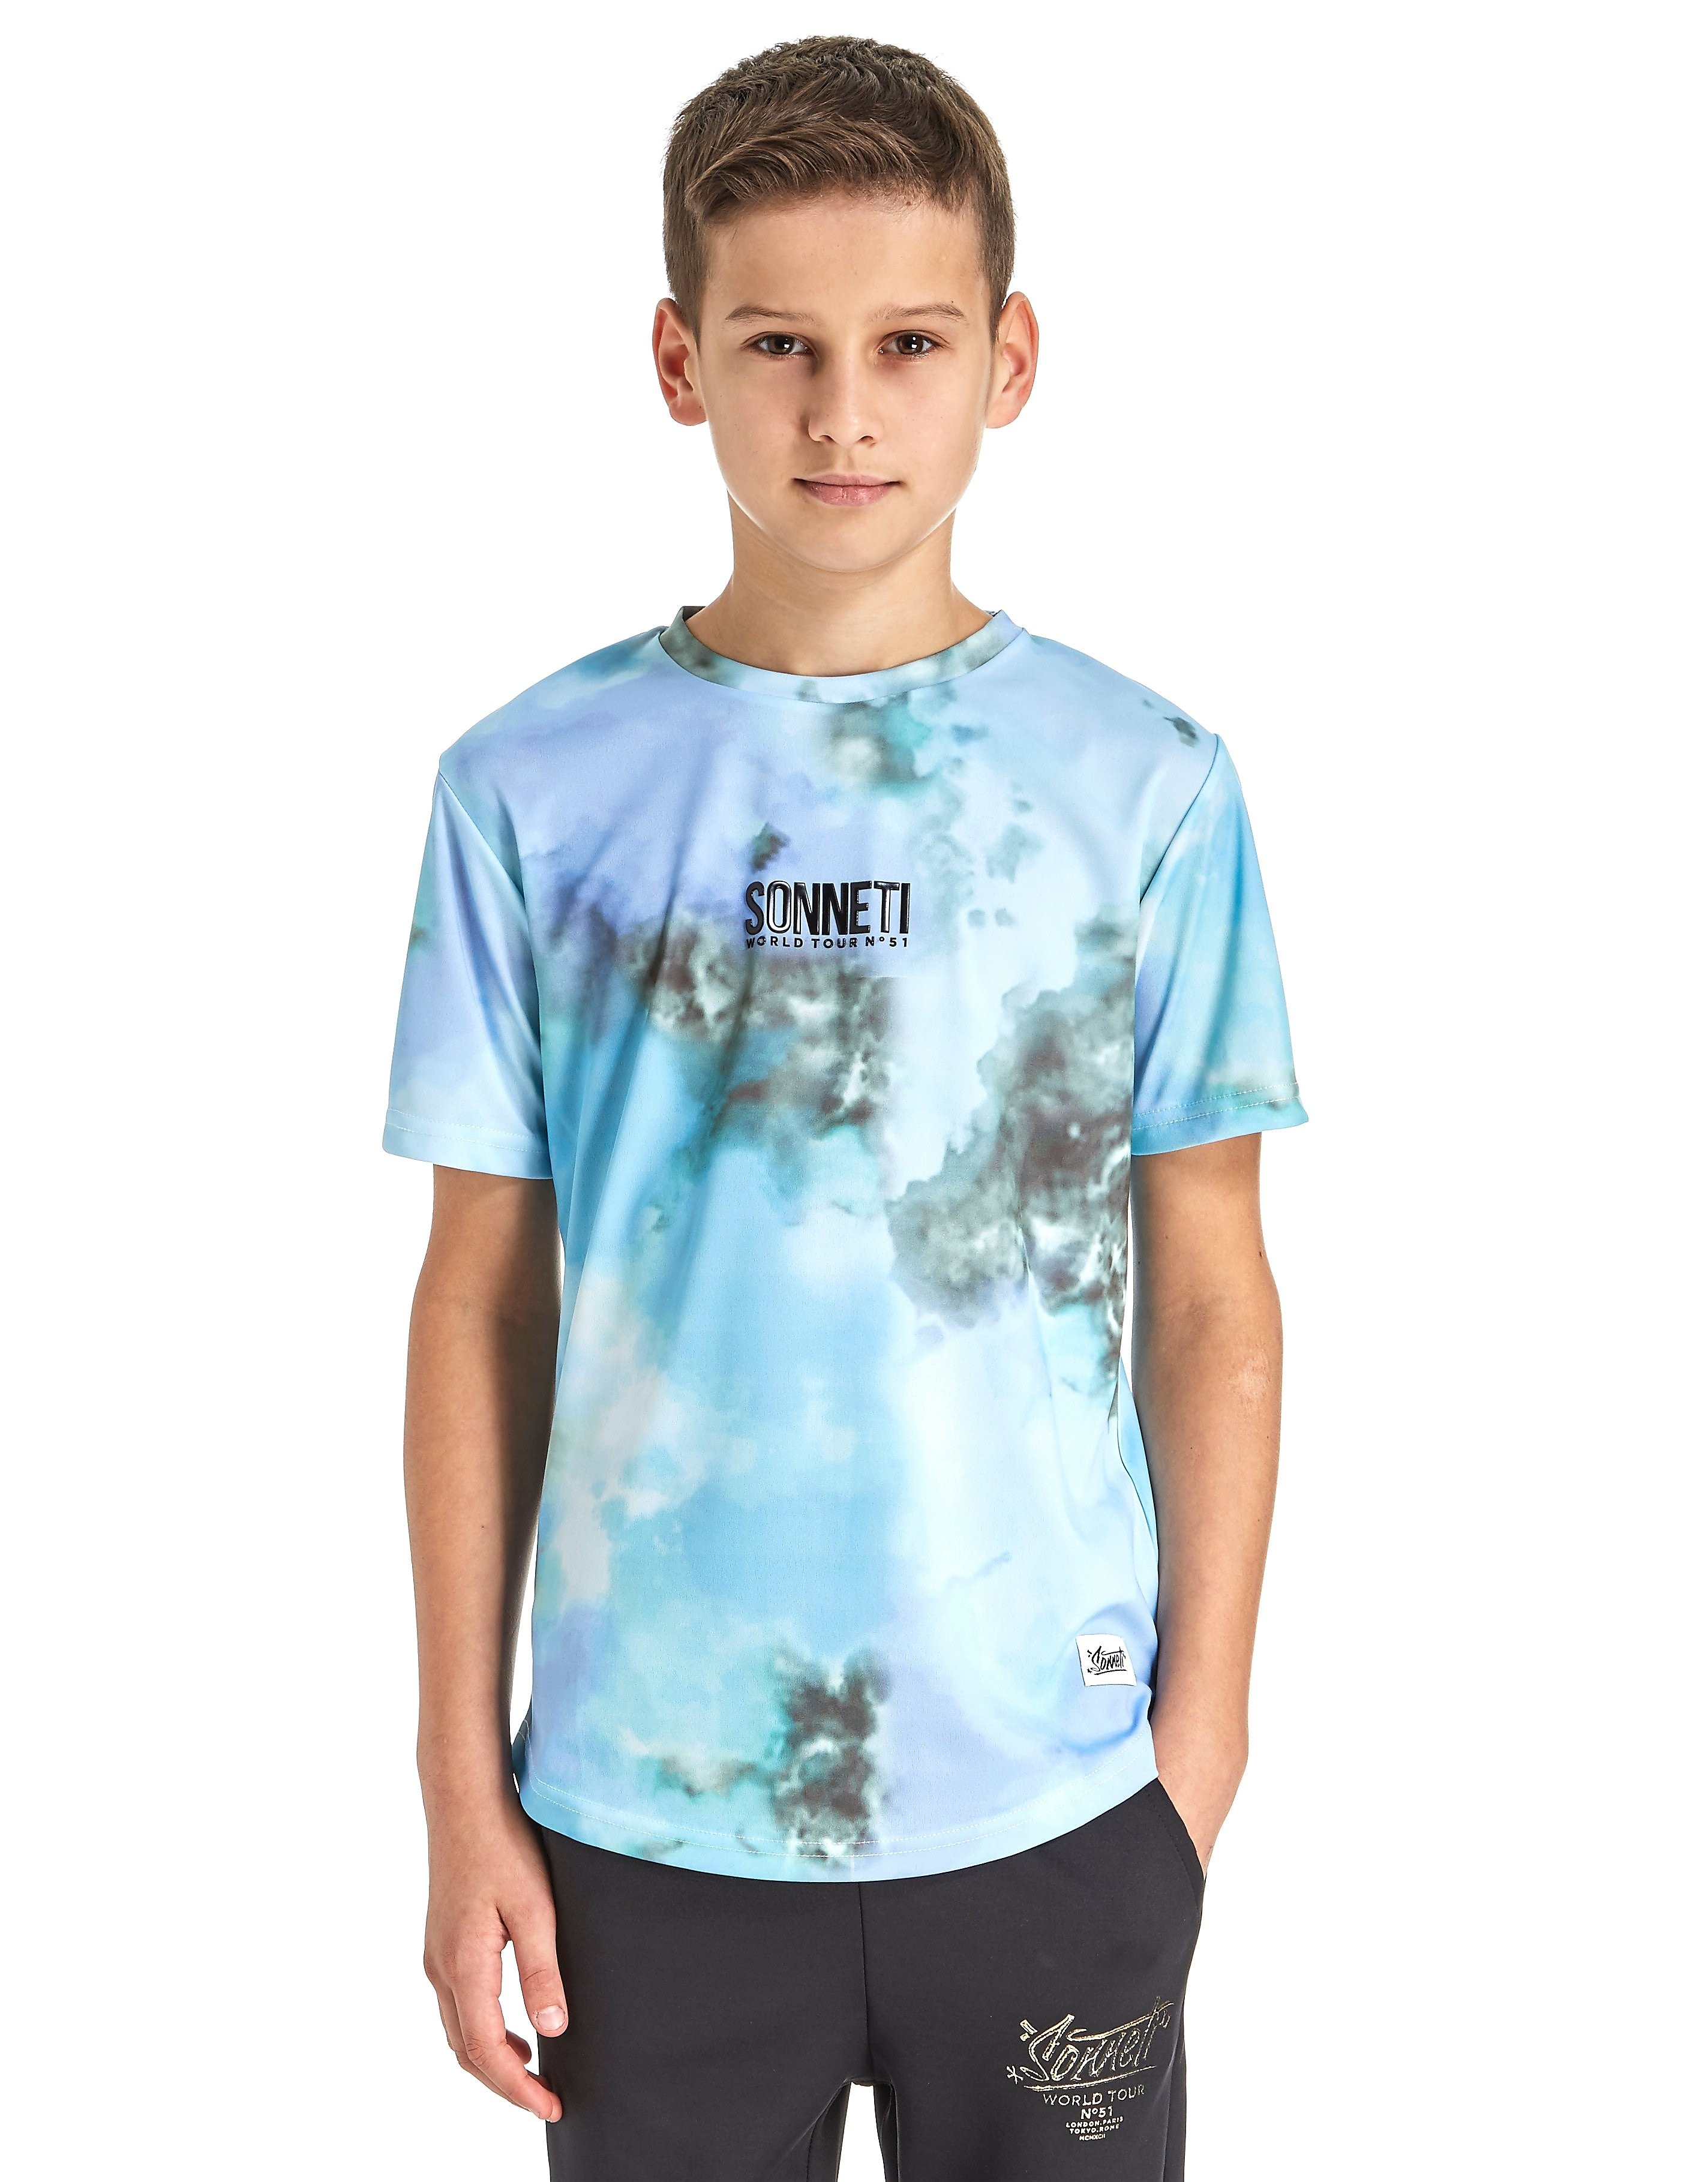 Sonneti Ward T-shirt Junior